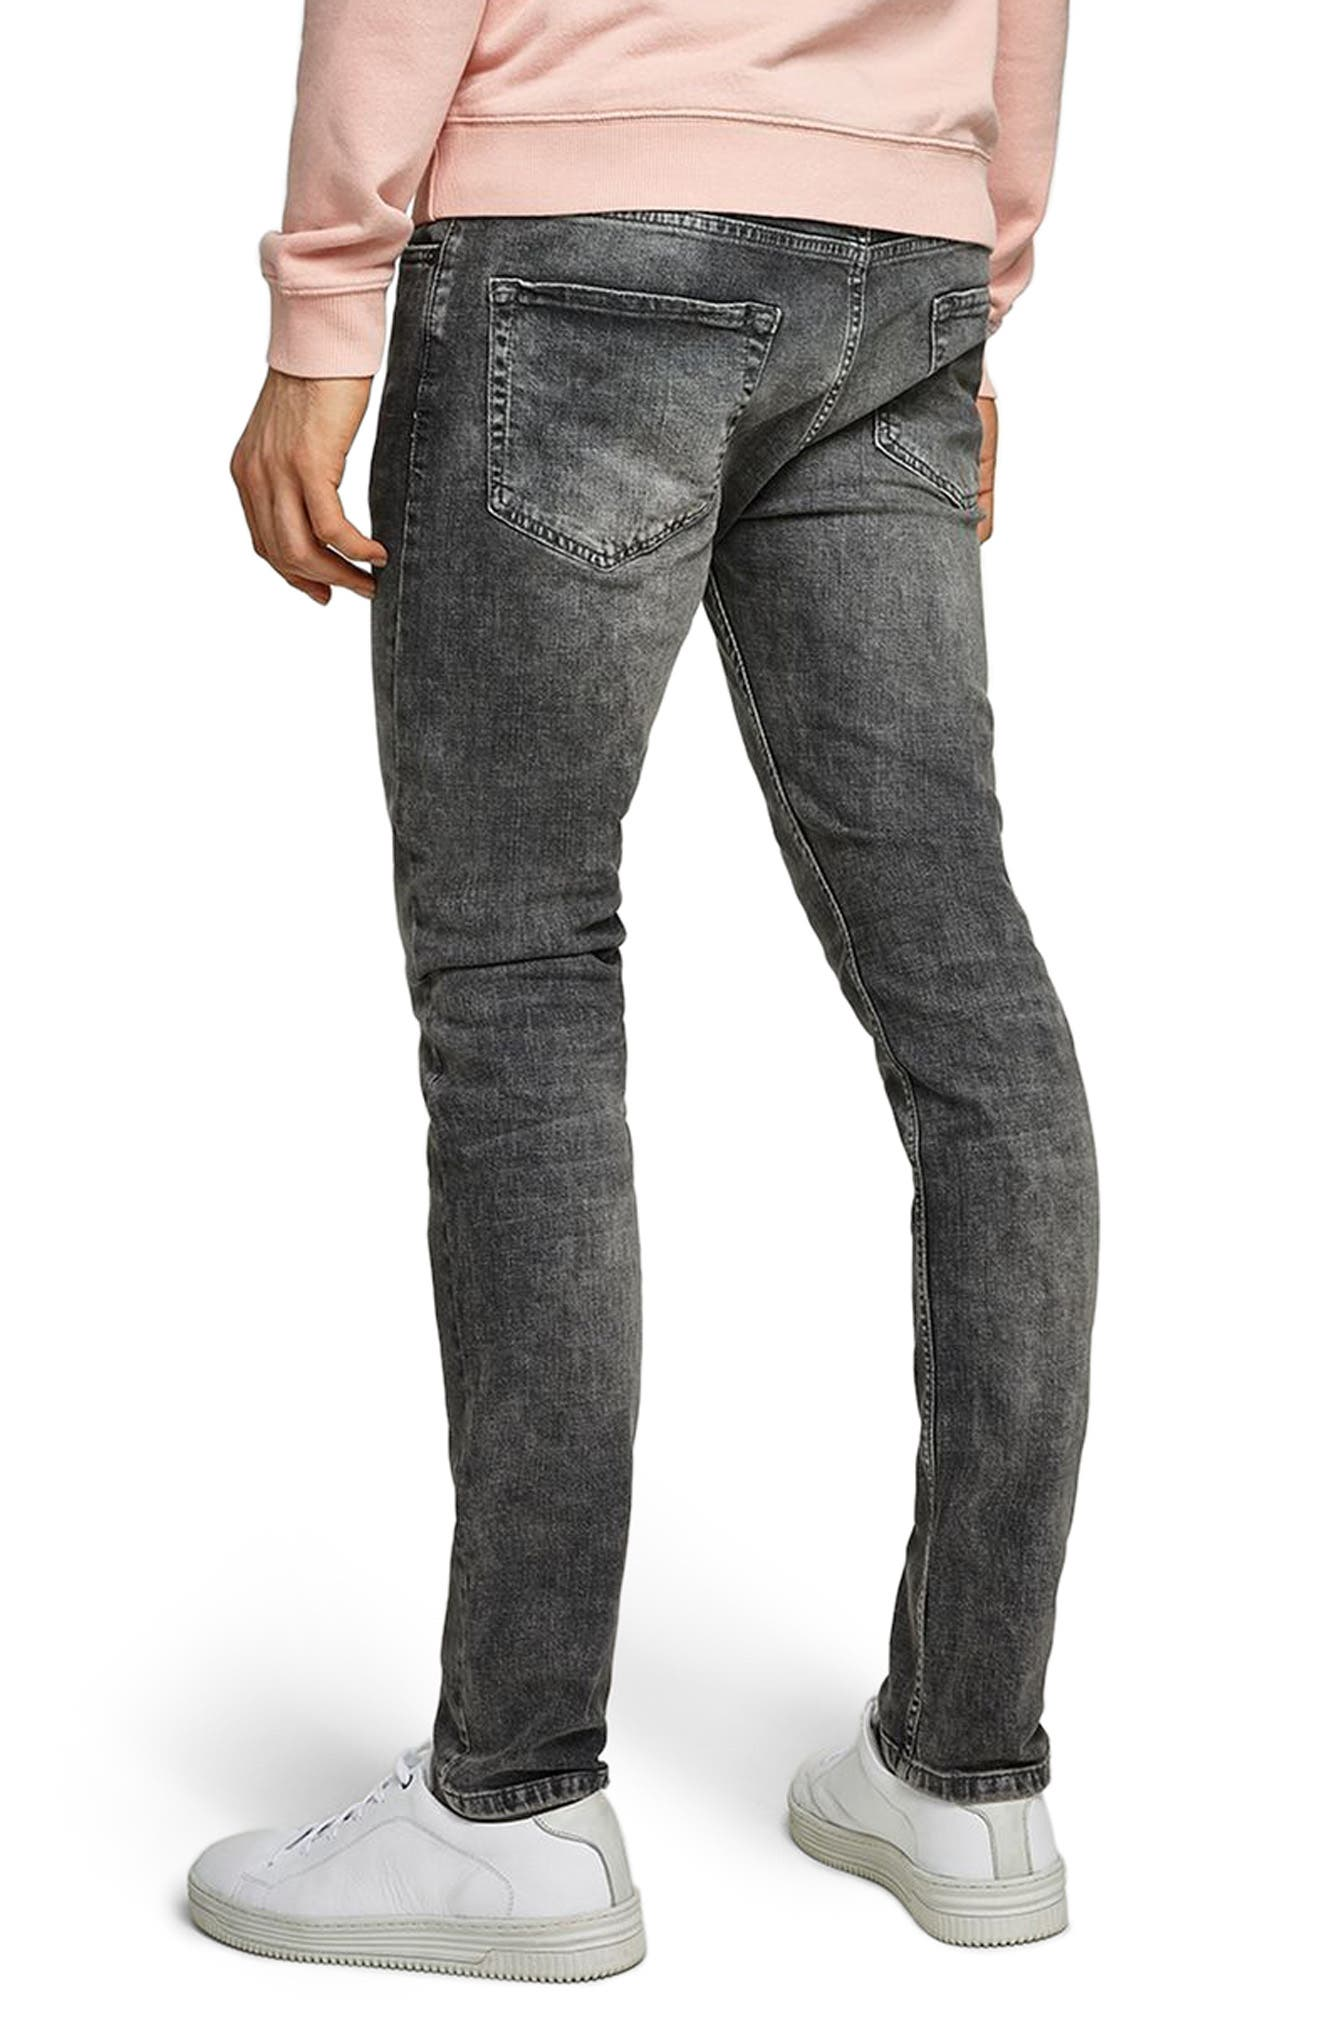 Grey Stretch Skinny Jeans,                             Alternate thumbnail 2, color,                             020